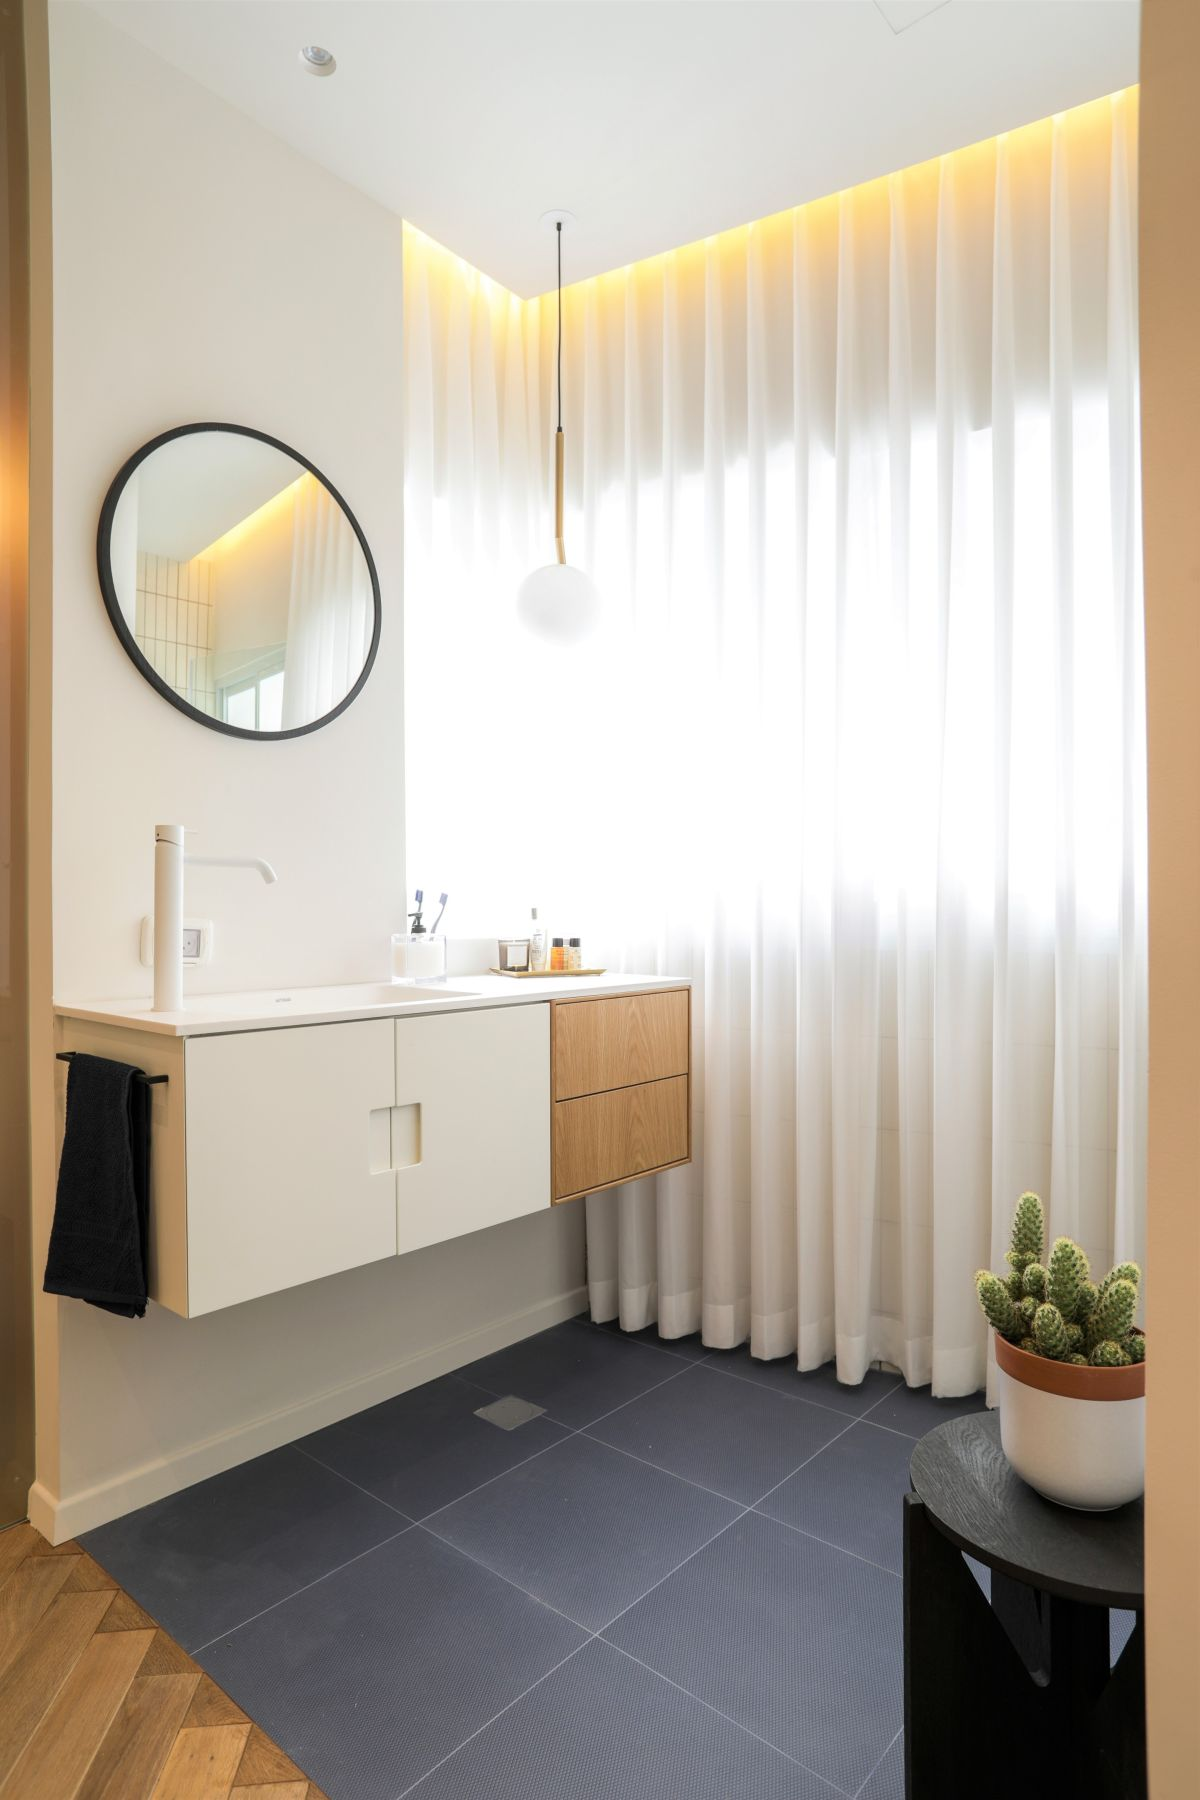 The lack of a permanent wall by the vanity makes the bathroom seem larger.